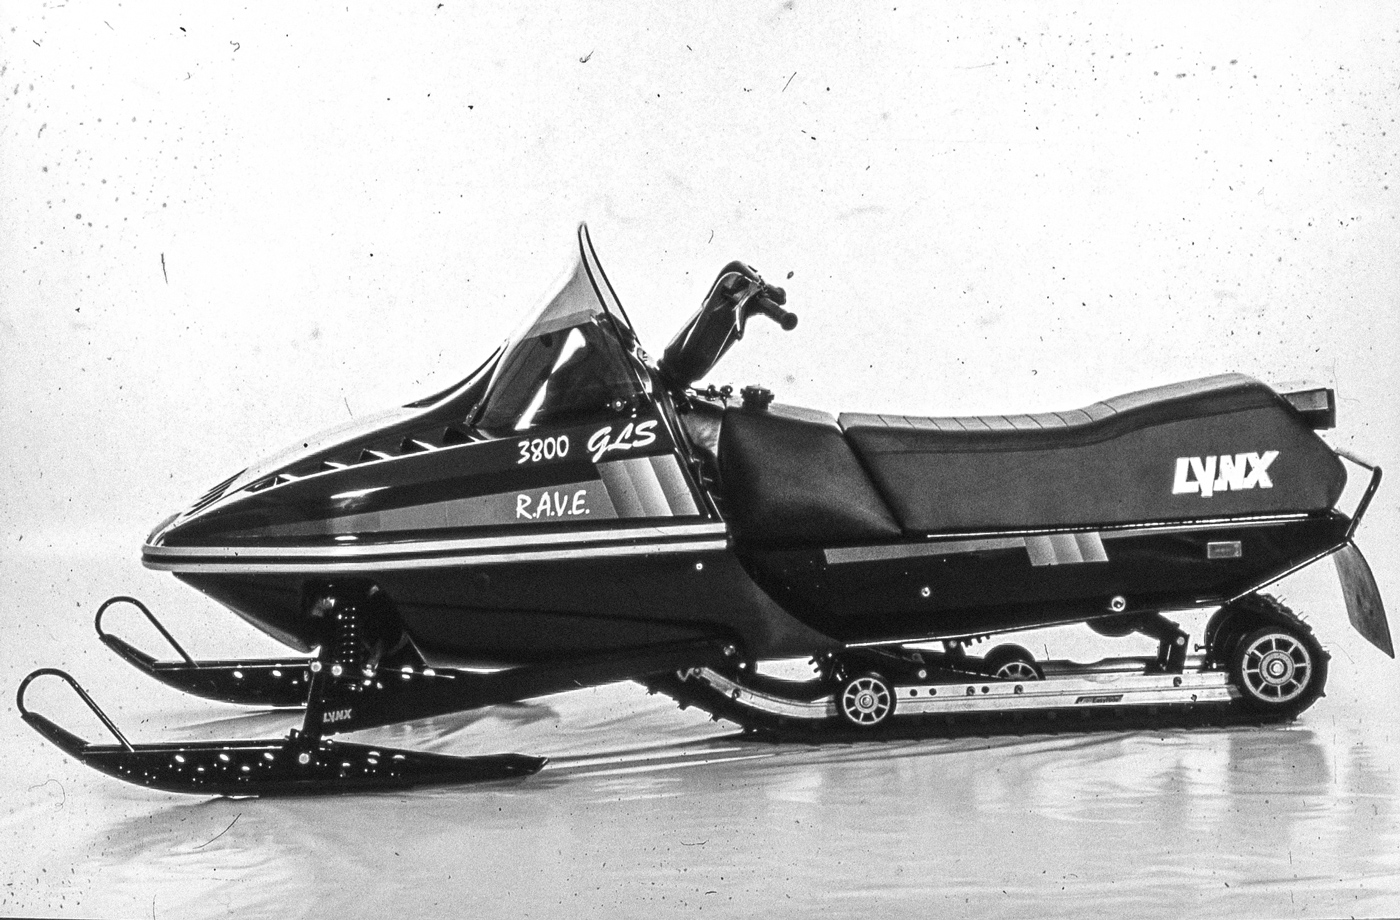 5 Decades / 5 Stories - 50 Years of Lynx Snowmobiles